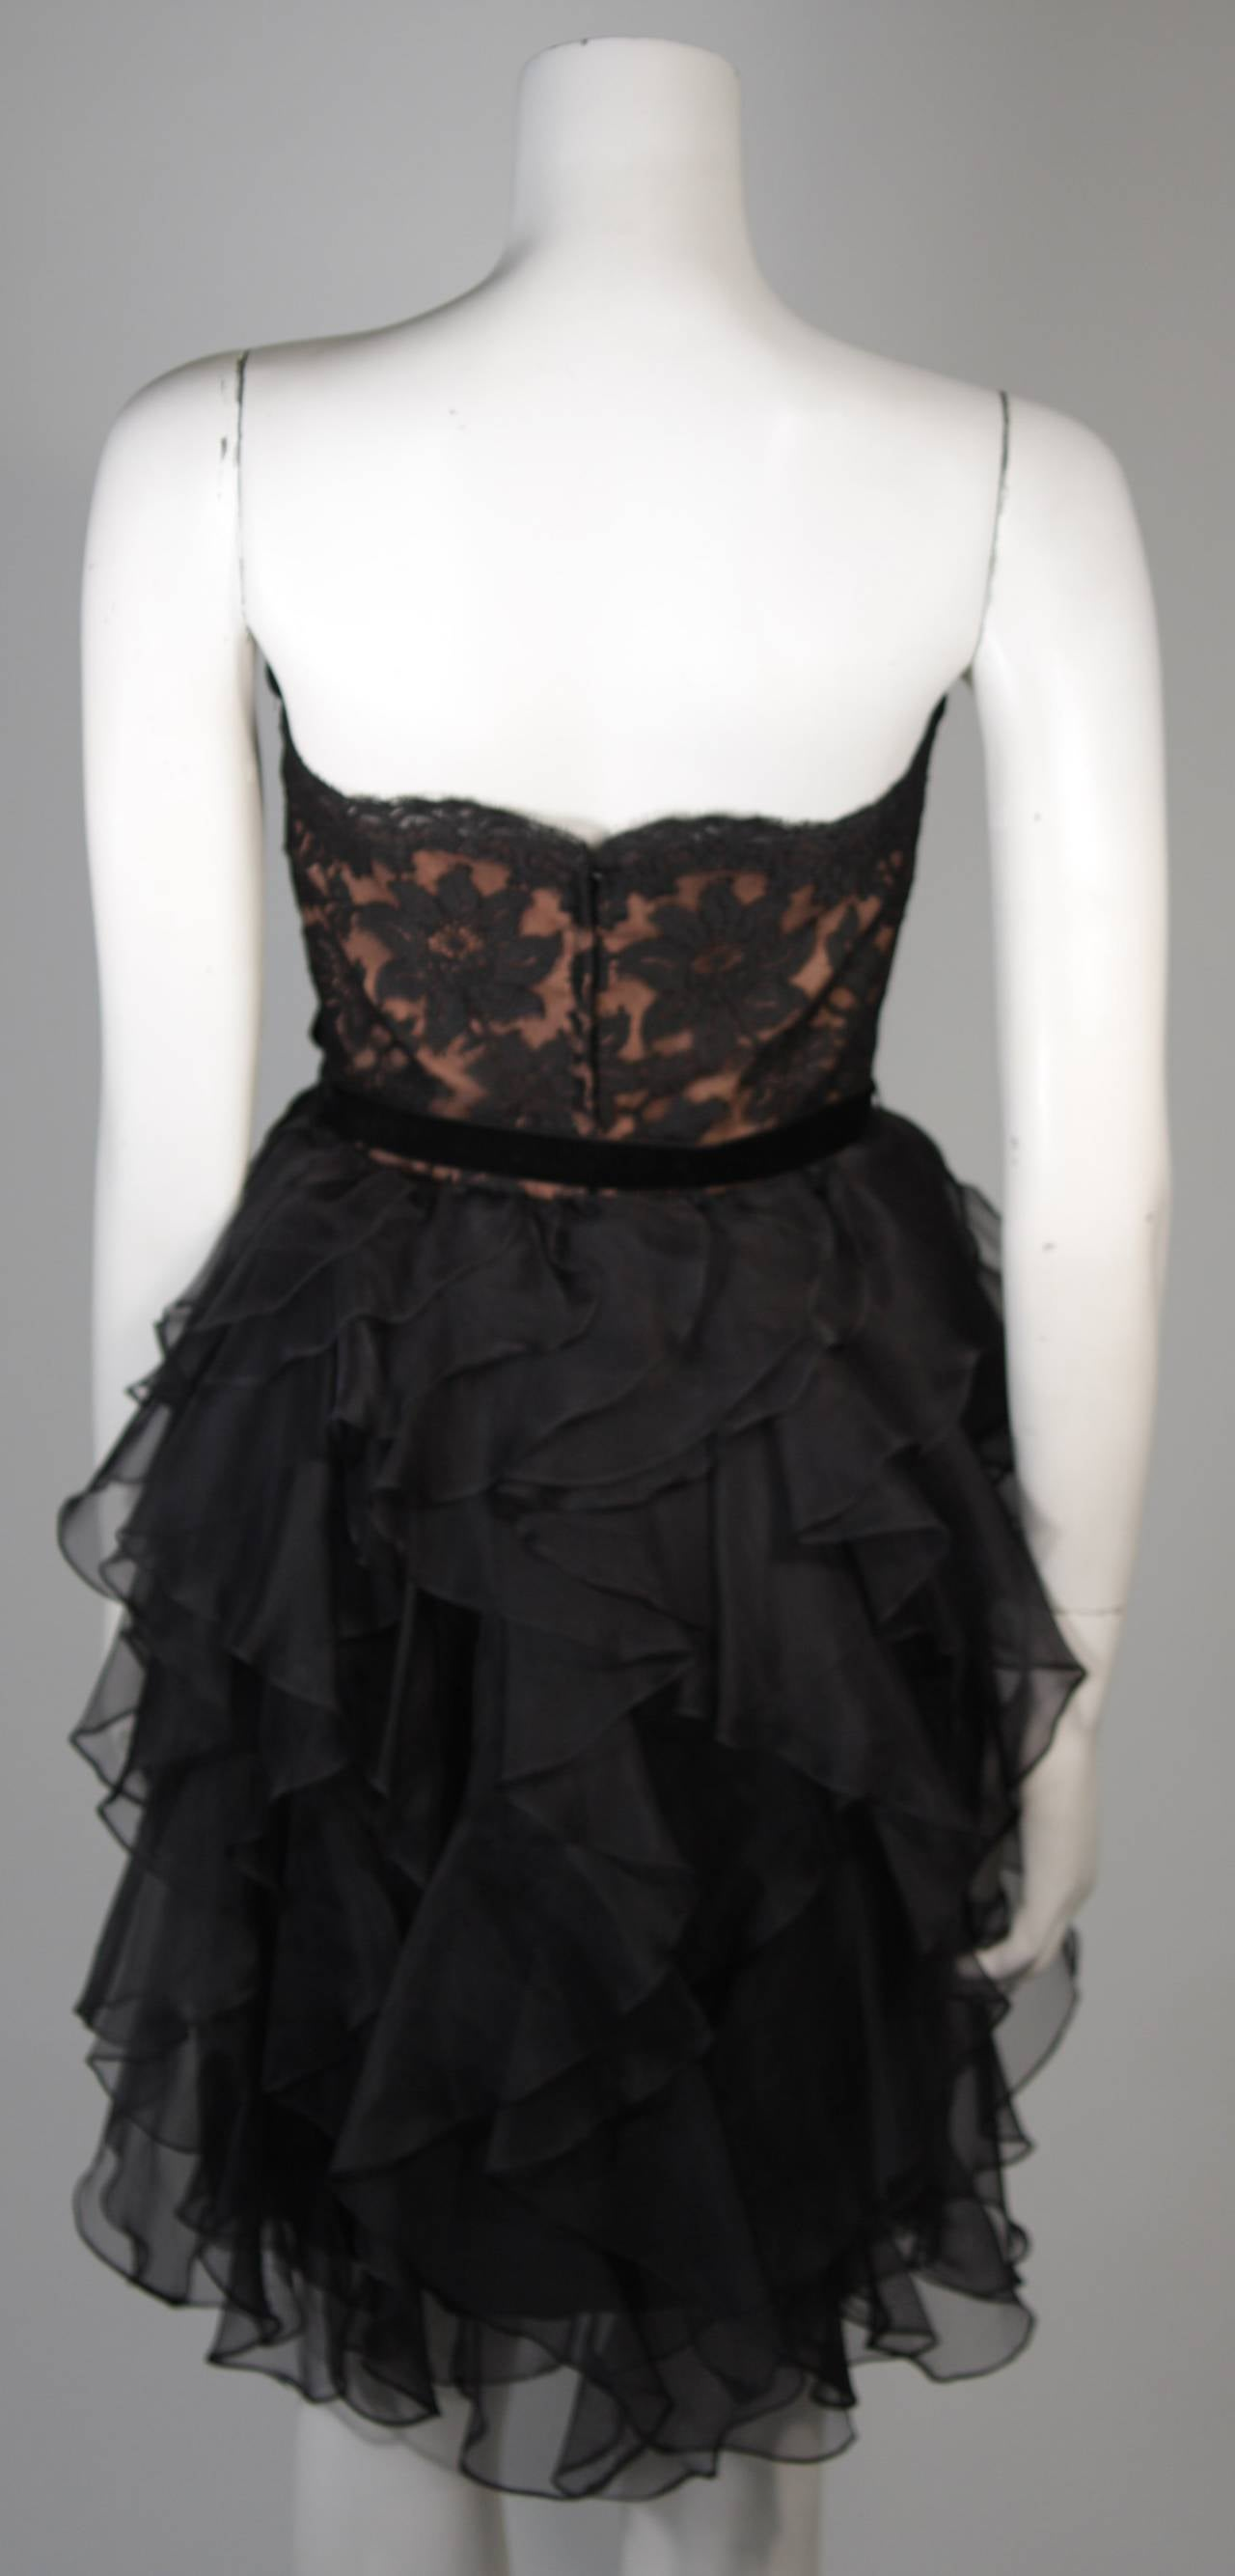 Jill Richards Black Lace Cocktail Dress with Layered Silk Skirt Size 6 For Sale 5